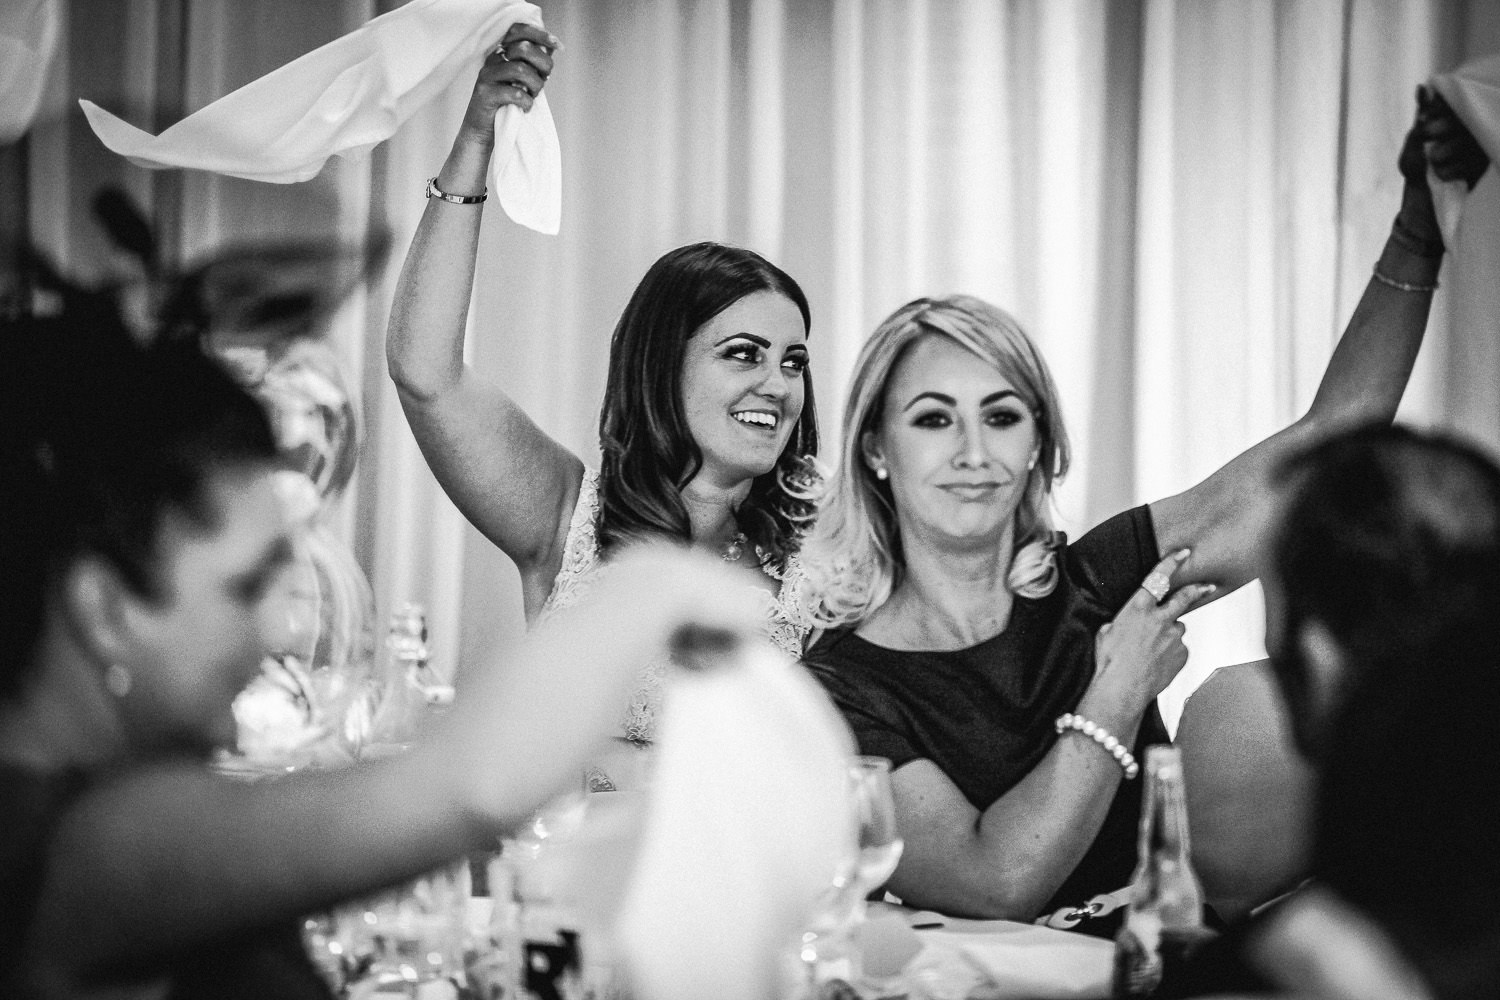 GIFT OF TIME: HILTON LIVERPOOL WEDDING PHOTOGRAPHY STORY | Liverpool | hilton liverpool